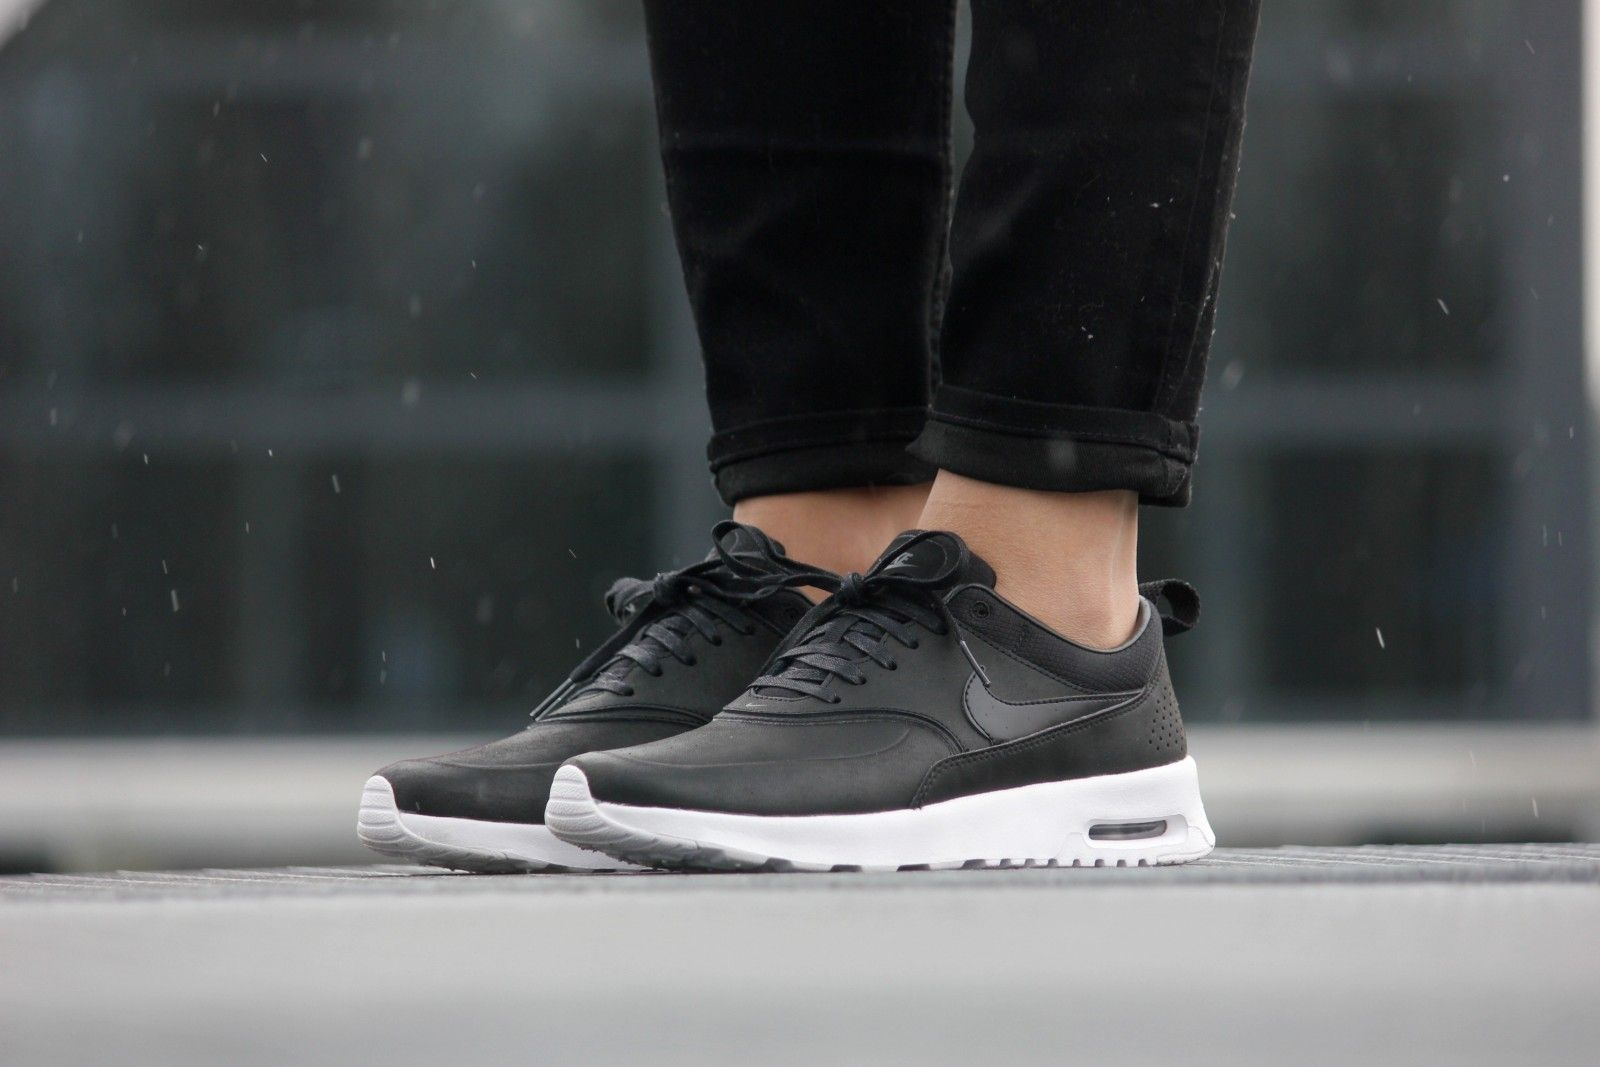 Nike WMNS Air Max Thea PRM Black Anthracite 616723 007